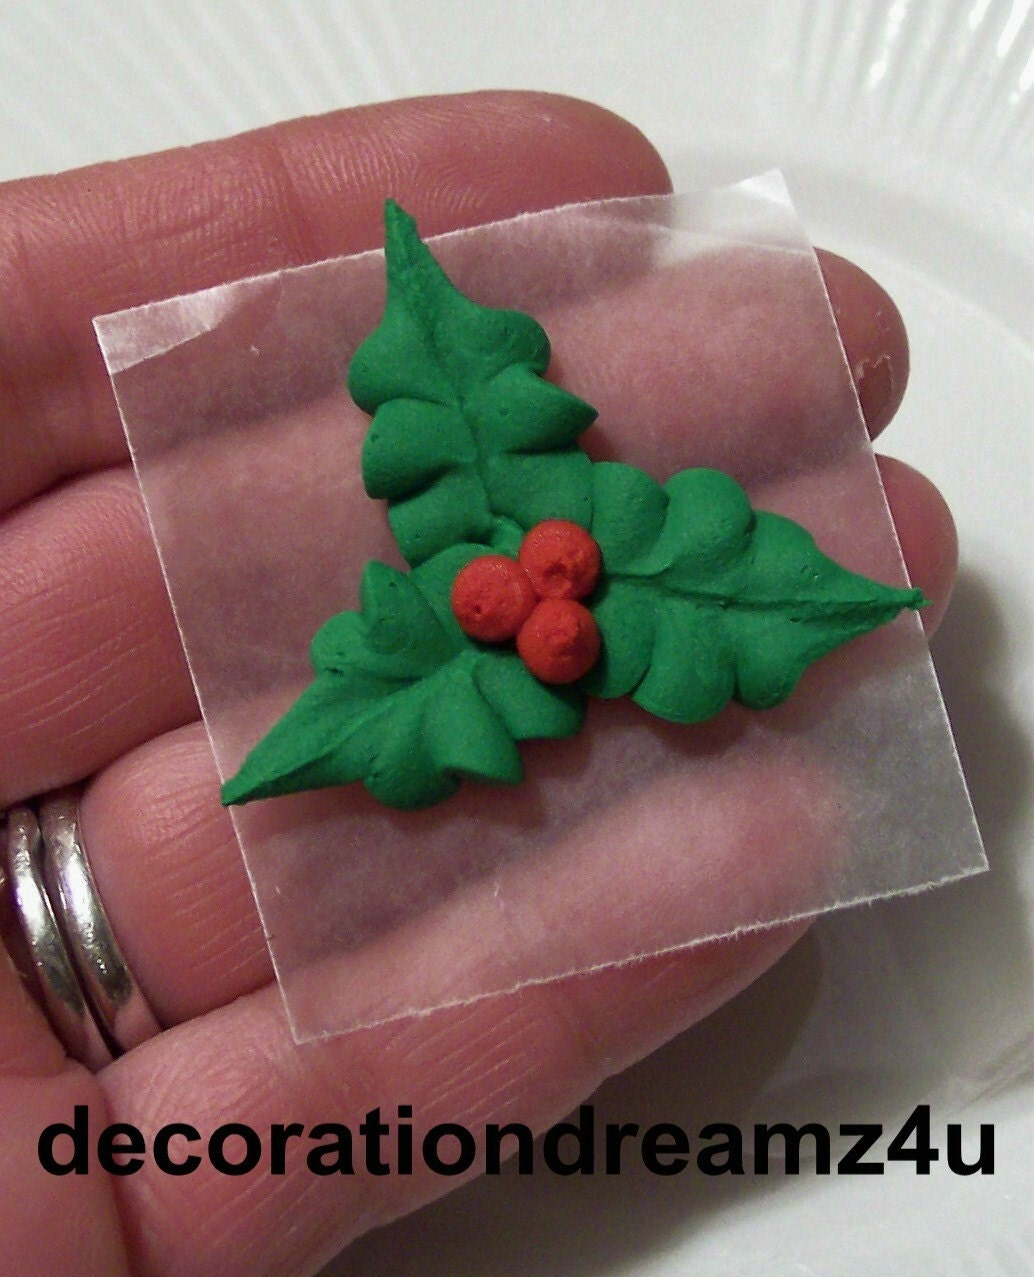 Edible Cake Decorations Holly Leaves : 10-1 1/2 Sugar Royal Icing Edible Christmas Holly Flower